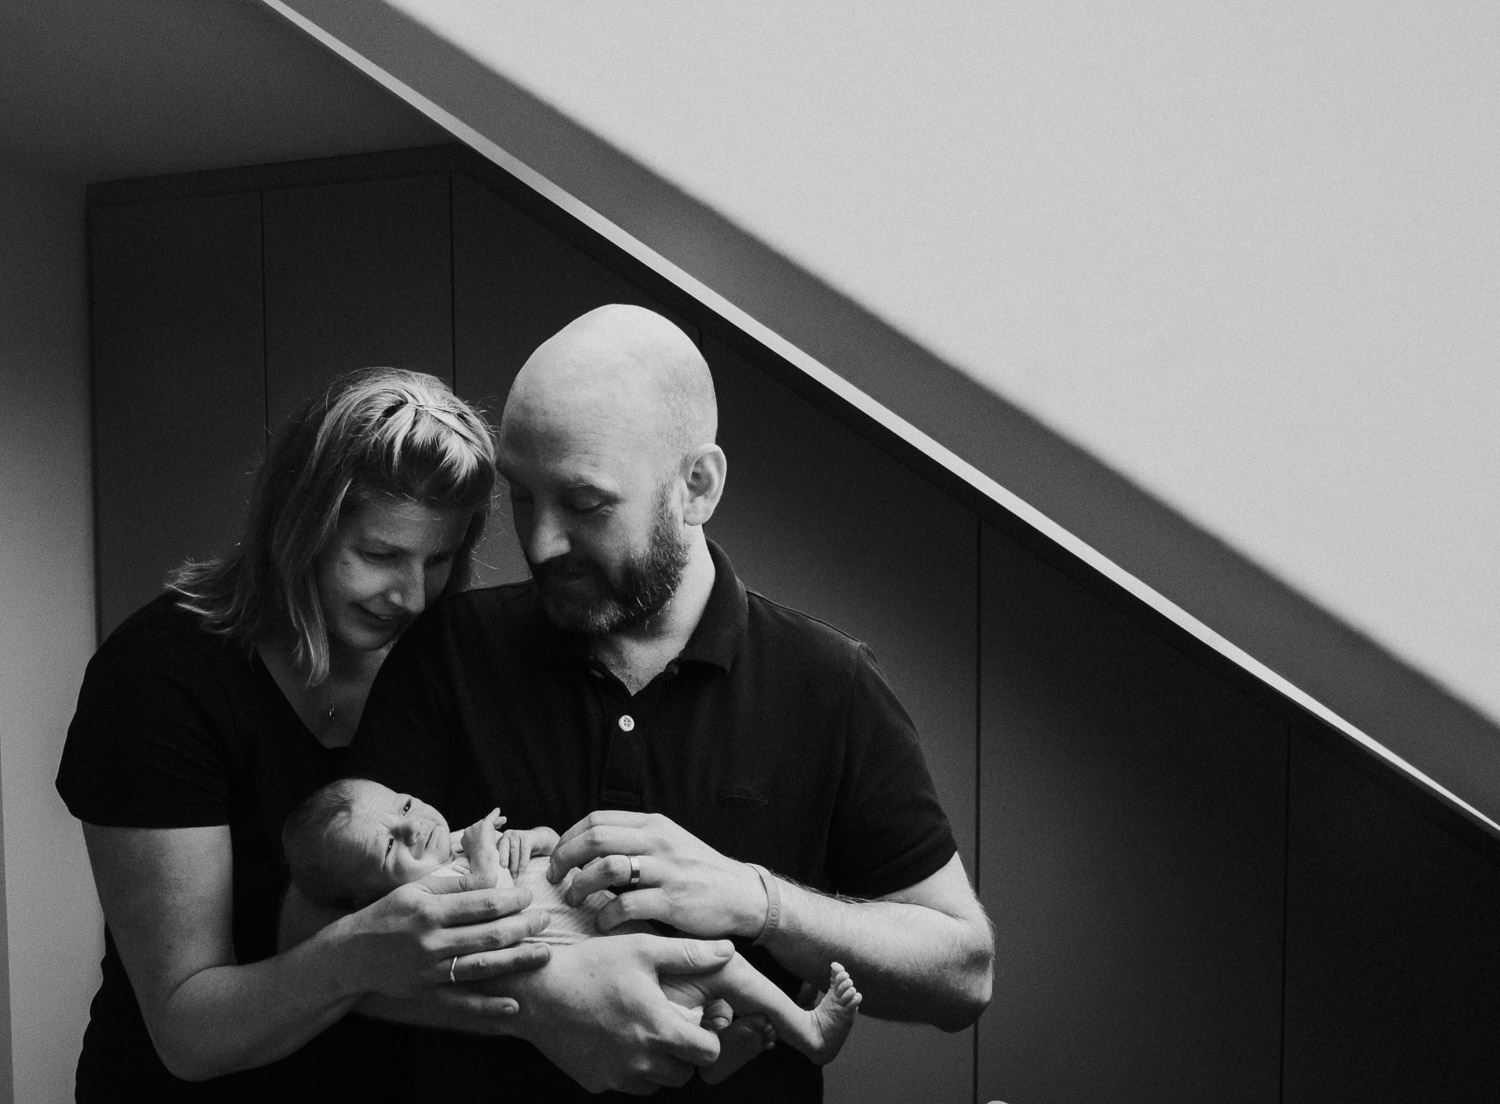 Ealing newborn photographer london baby photos parents with new baby standing next to window